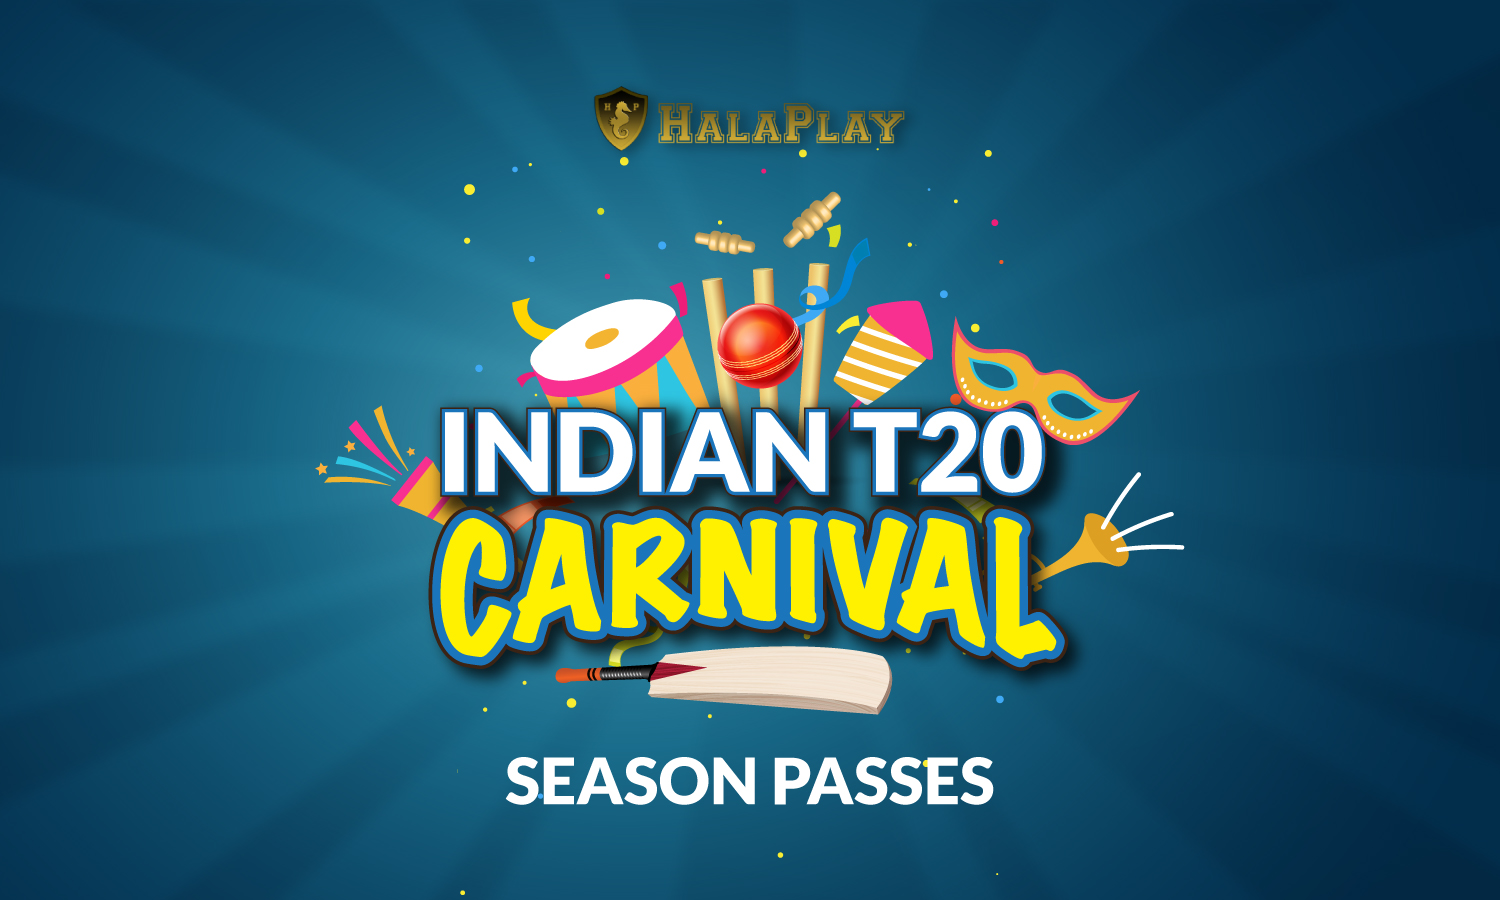 Indian T20 Carnival Season Pass